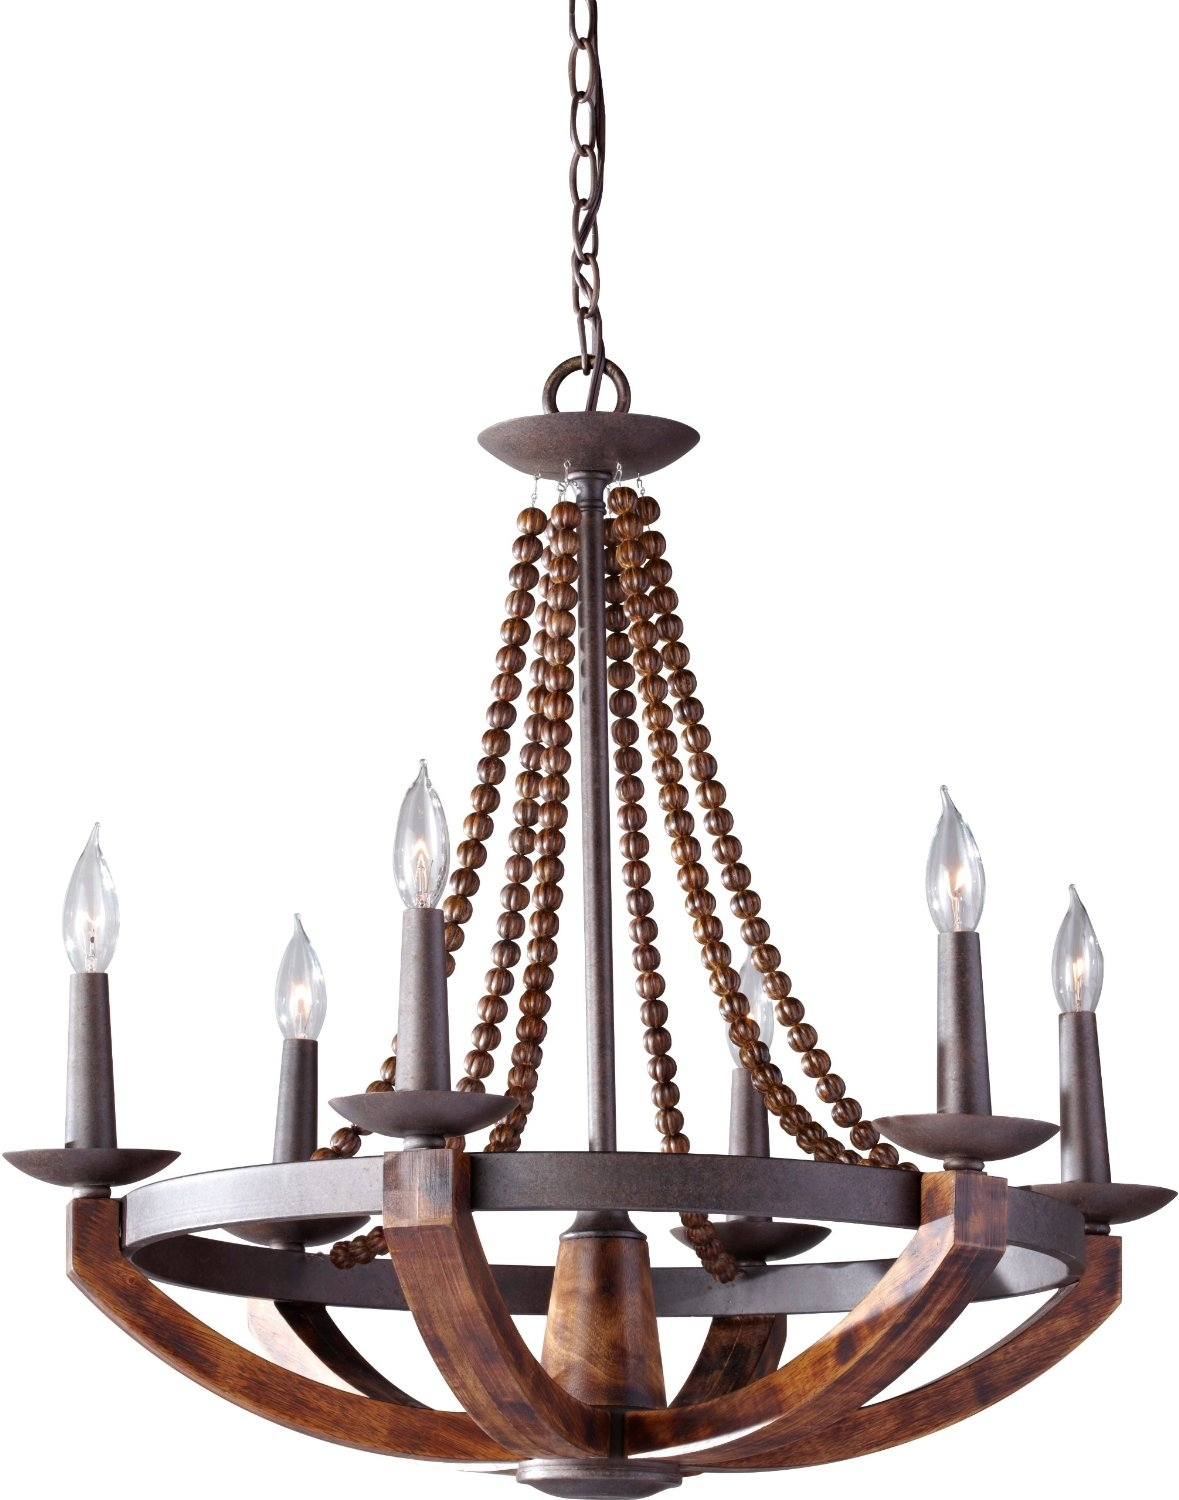 Chandelier Astounding Rustic Wrought Iron Chandelier Rustic Iron Regarding Metal Ball Candle Chandeliers (Image 15 of 25)